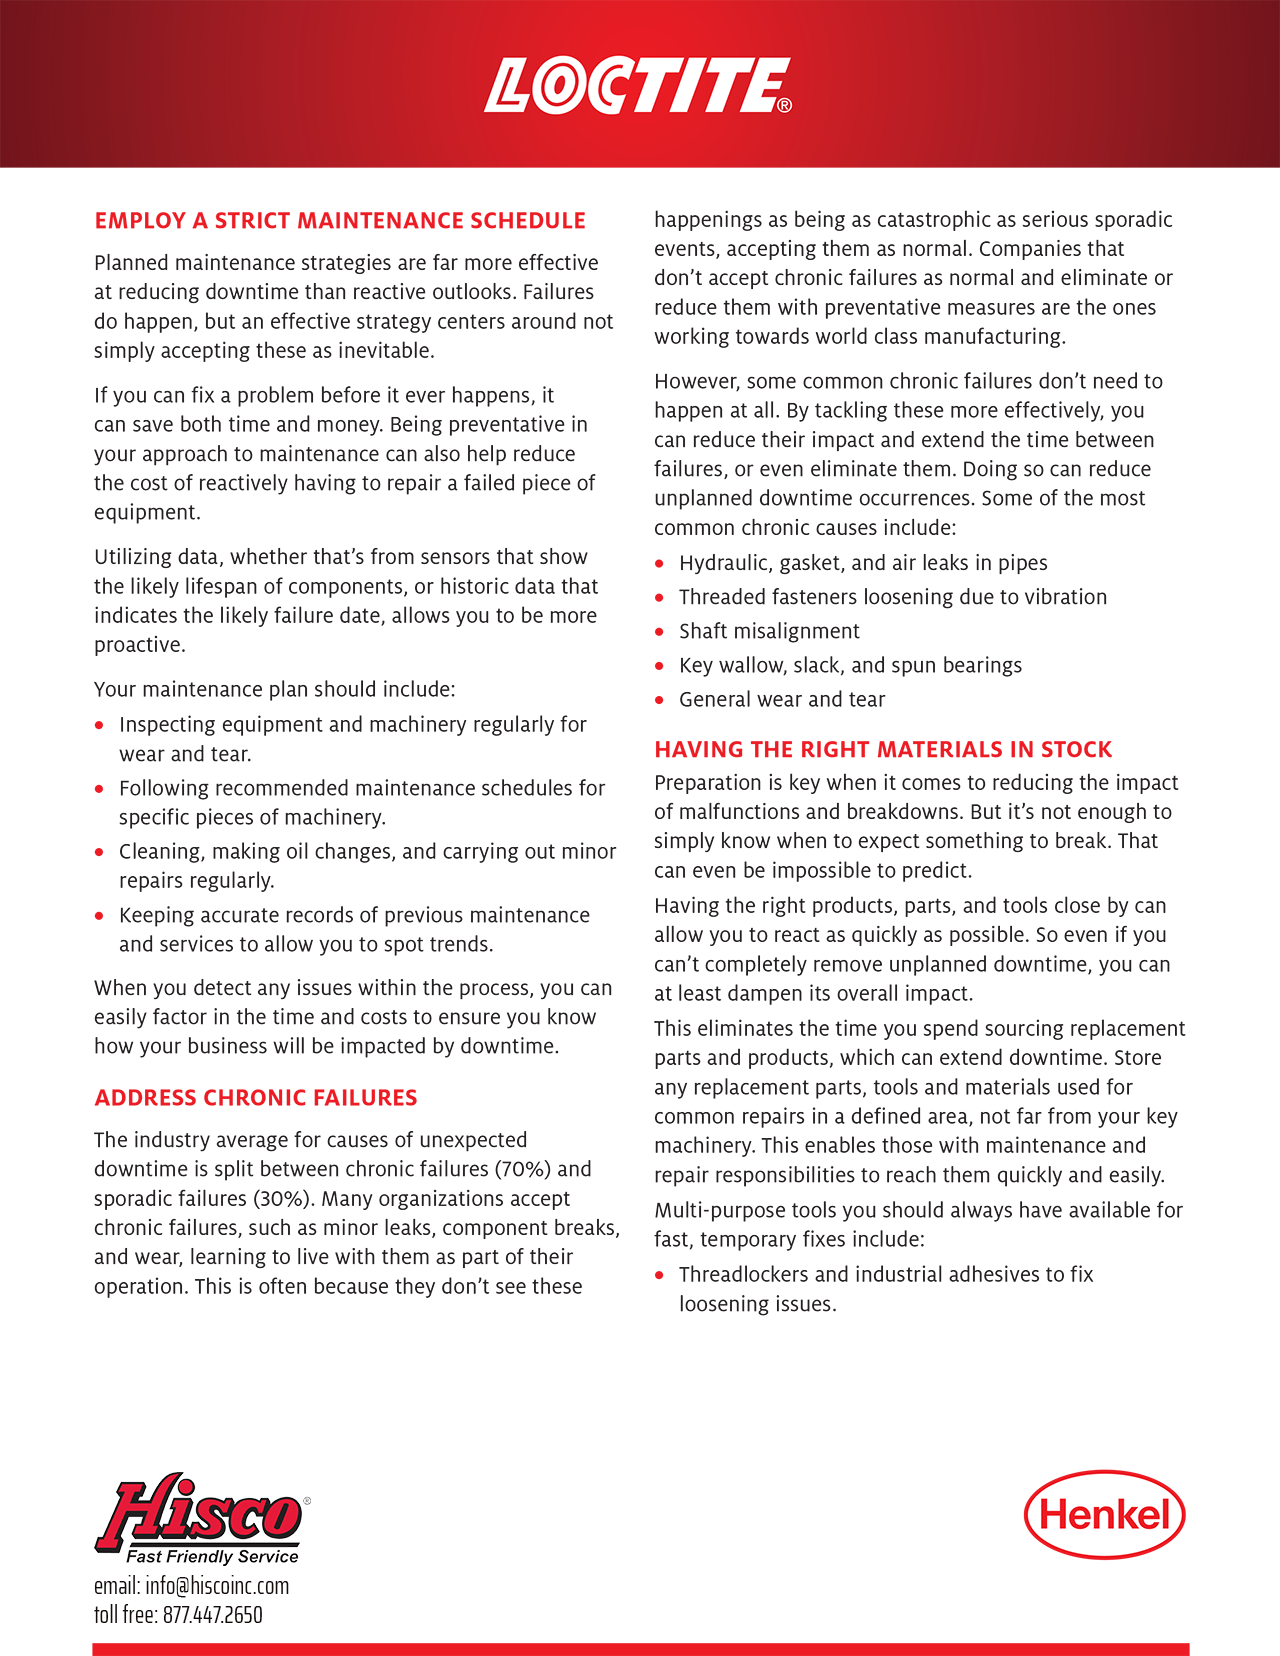 How to Reduce Unplanned Downtime with Effective Maintenance and Repairs p2